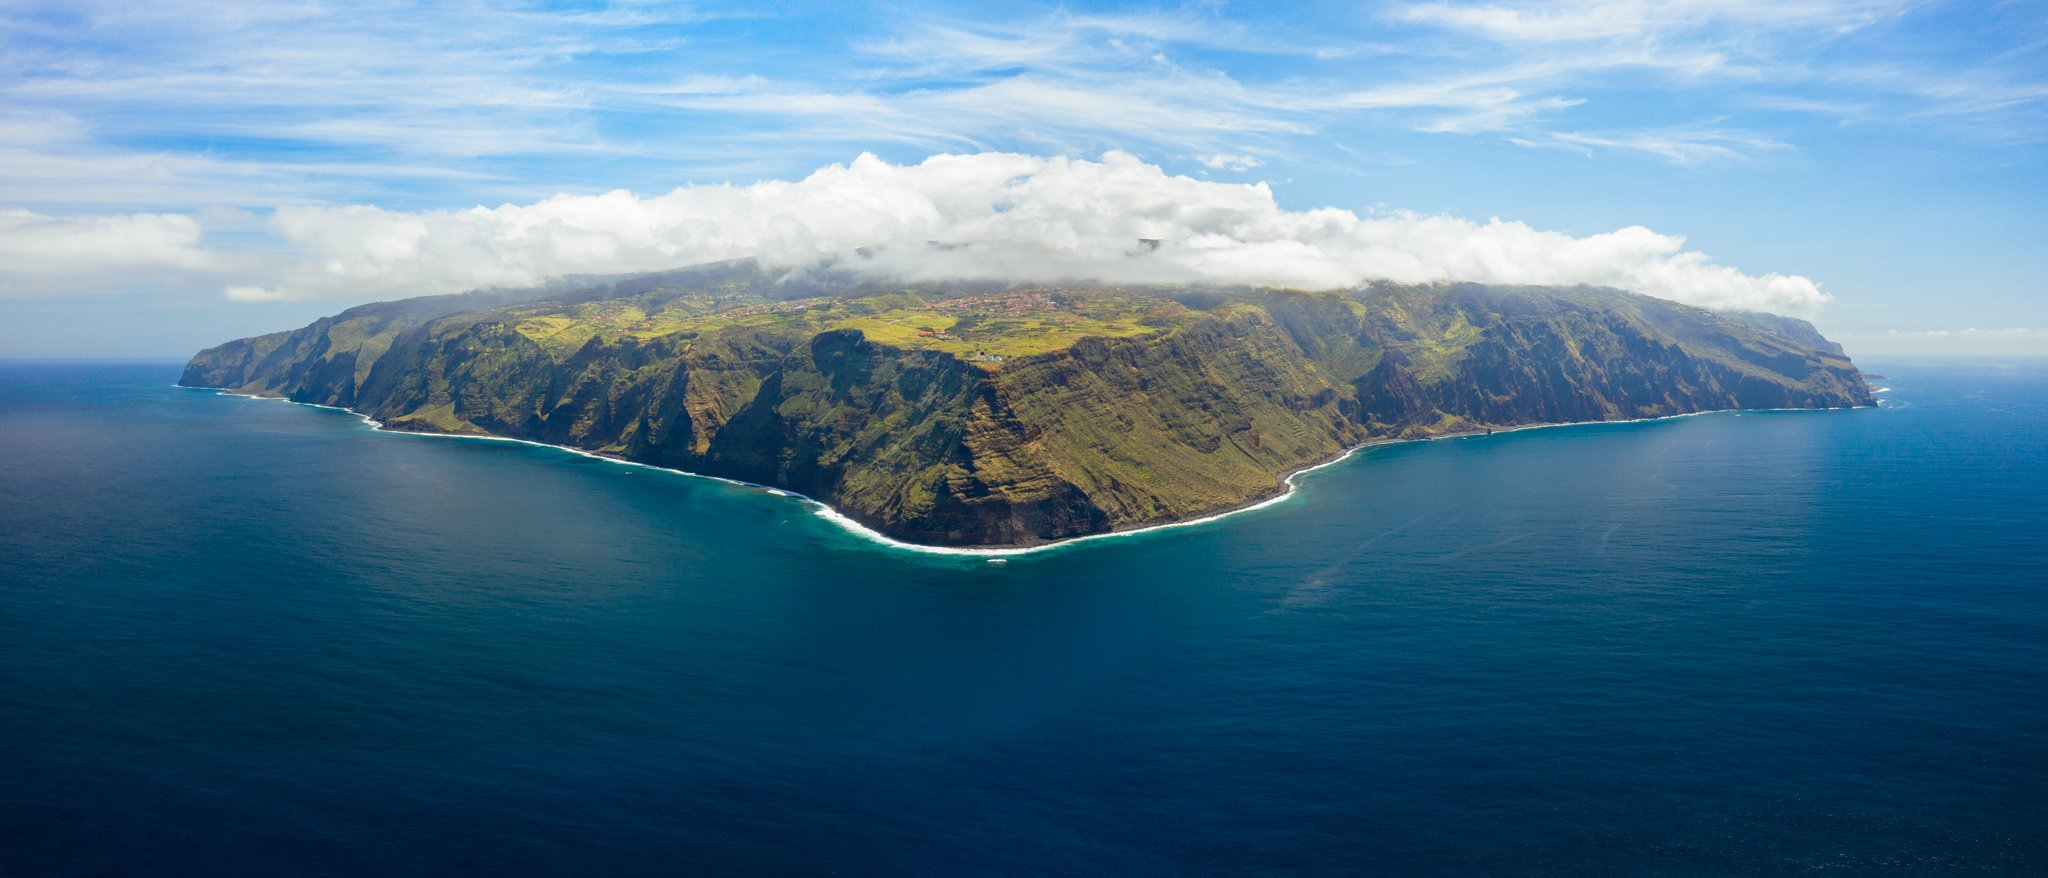 madeira ,portugal ,pontadopargo ,lighthouse ,island ,atlanticocean ,cliffs ,aerial ,dronephotography ,vertical ,clouds ,nature ,landscape ,panorama ,exploremadeira ,travel ,waves ,plateau ,planet ,sky ,volcanic ,amazingnature ,spring ,weather ,volcanicisl, Marko Radovanovic